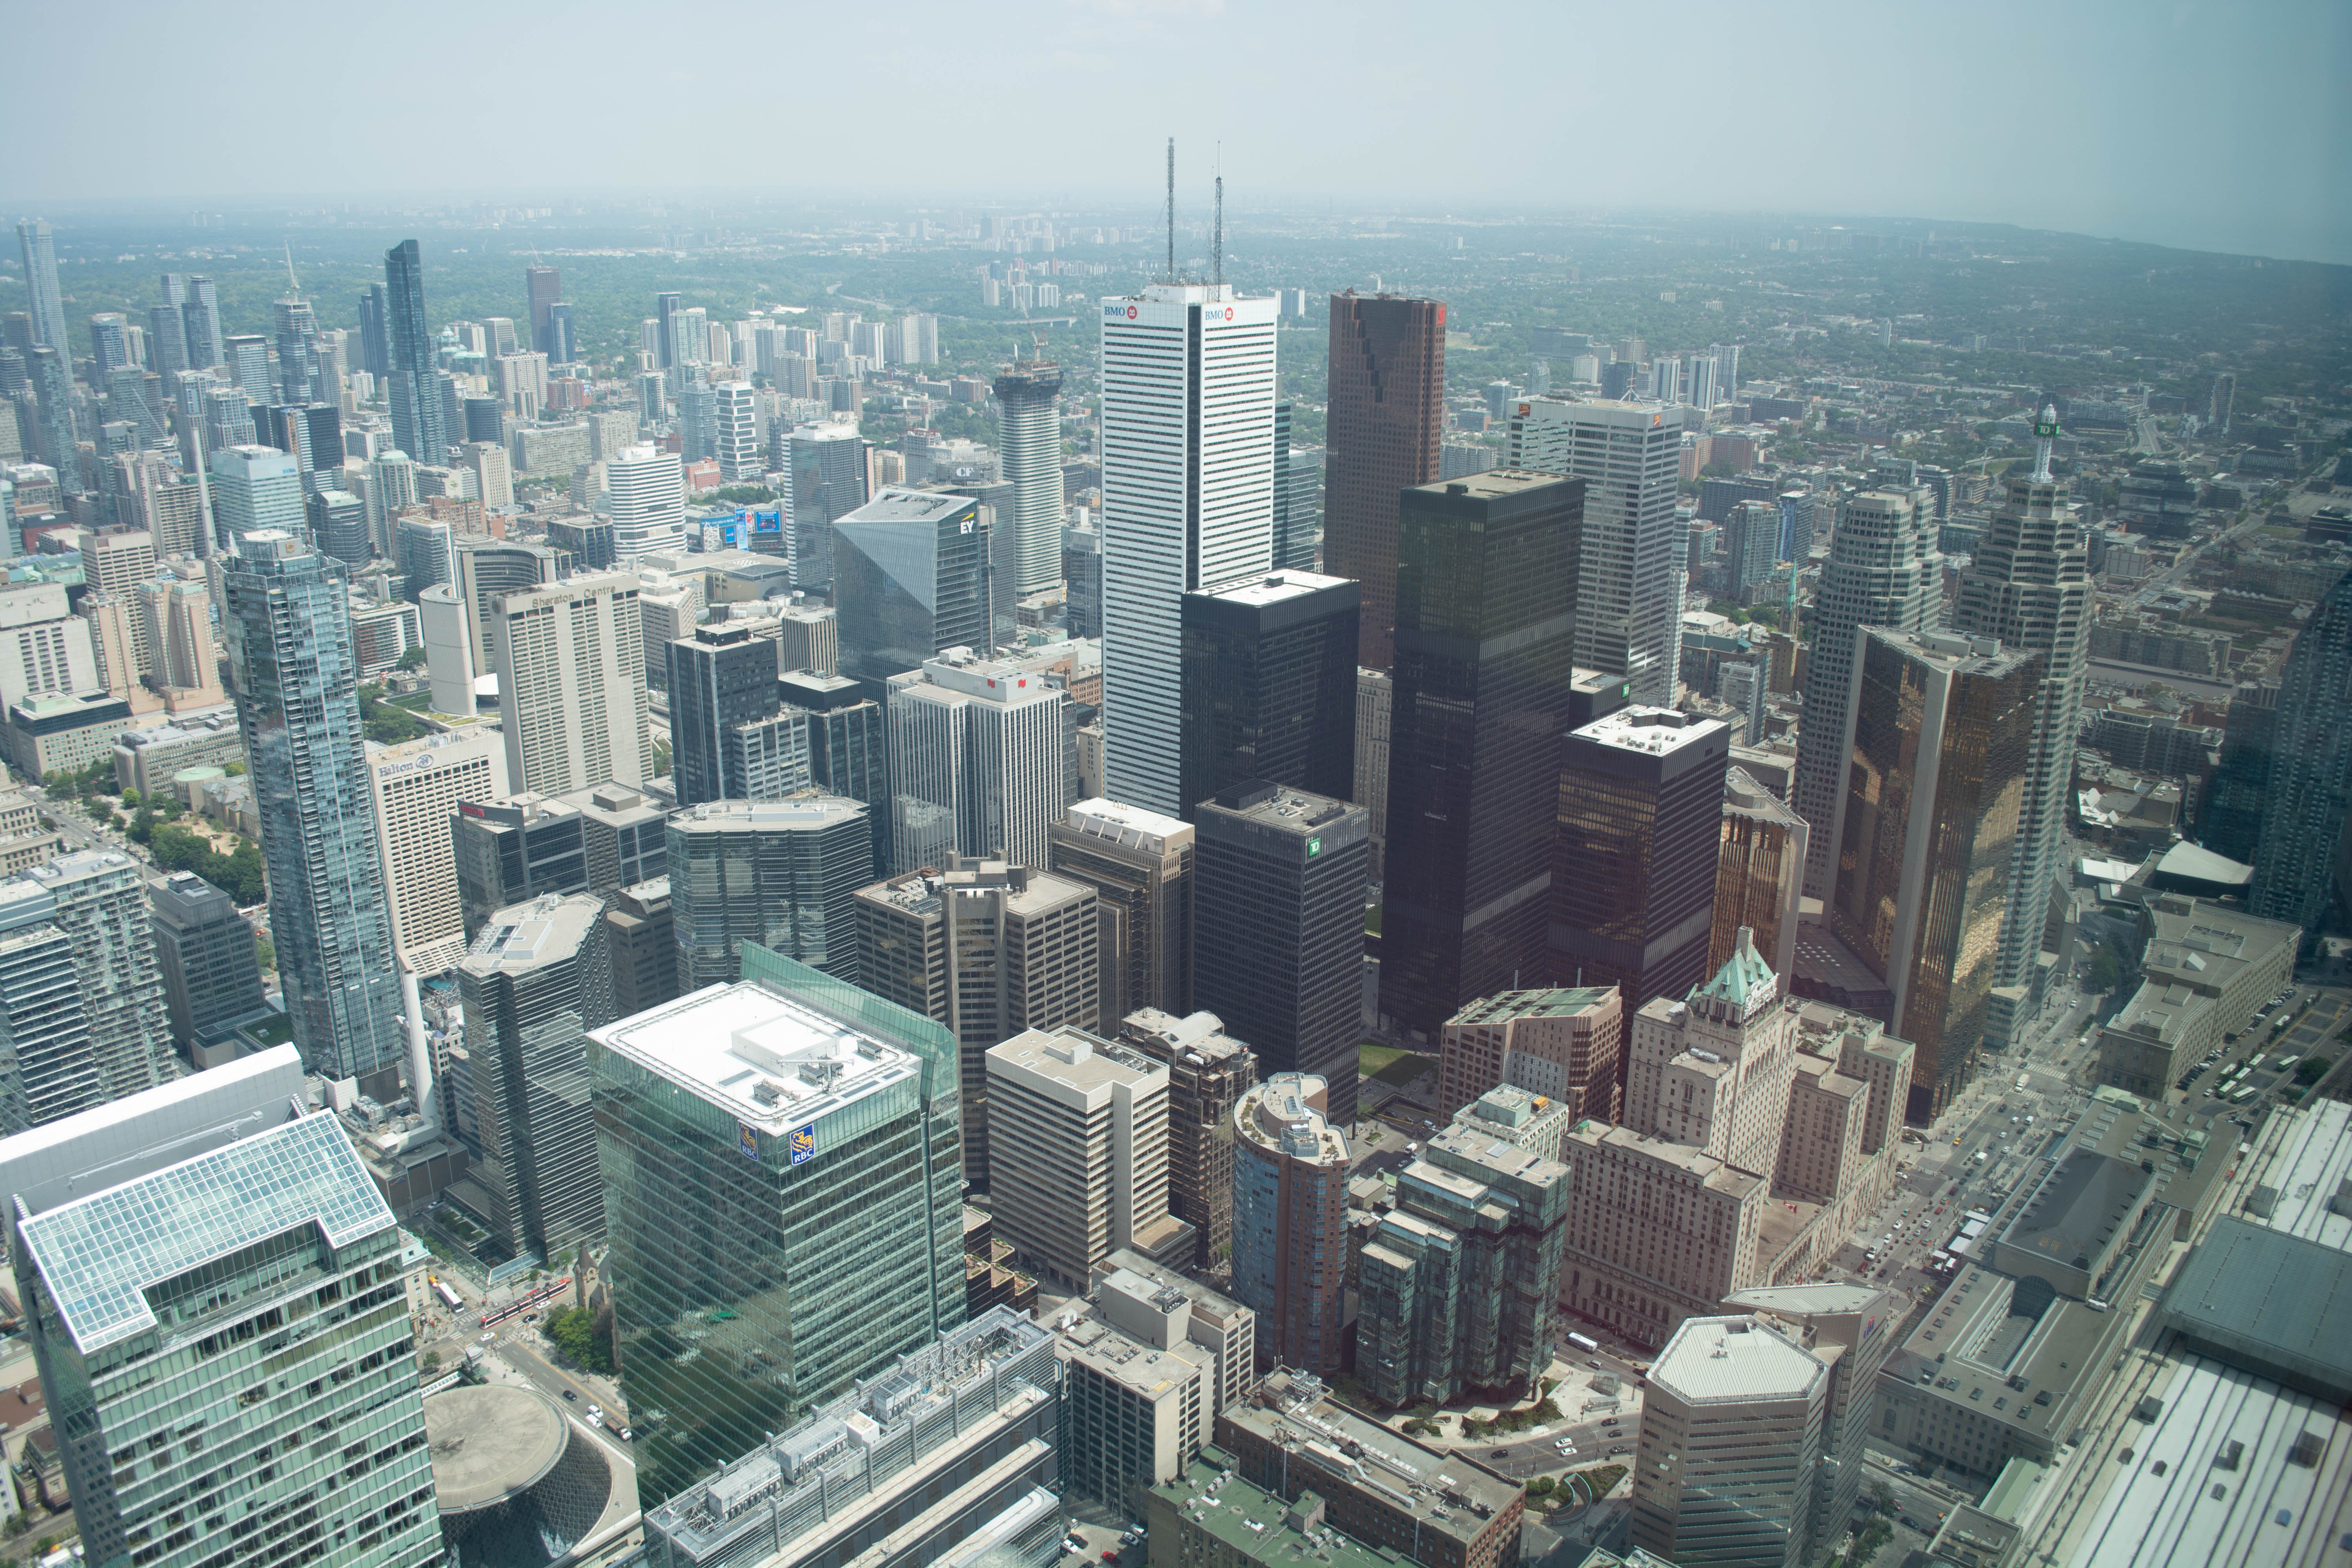 aerial view, architecture, buildings